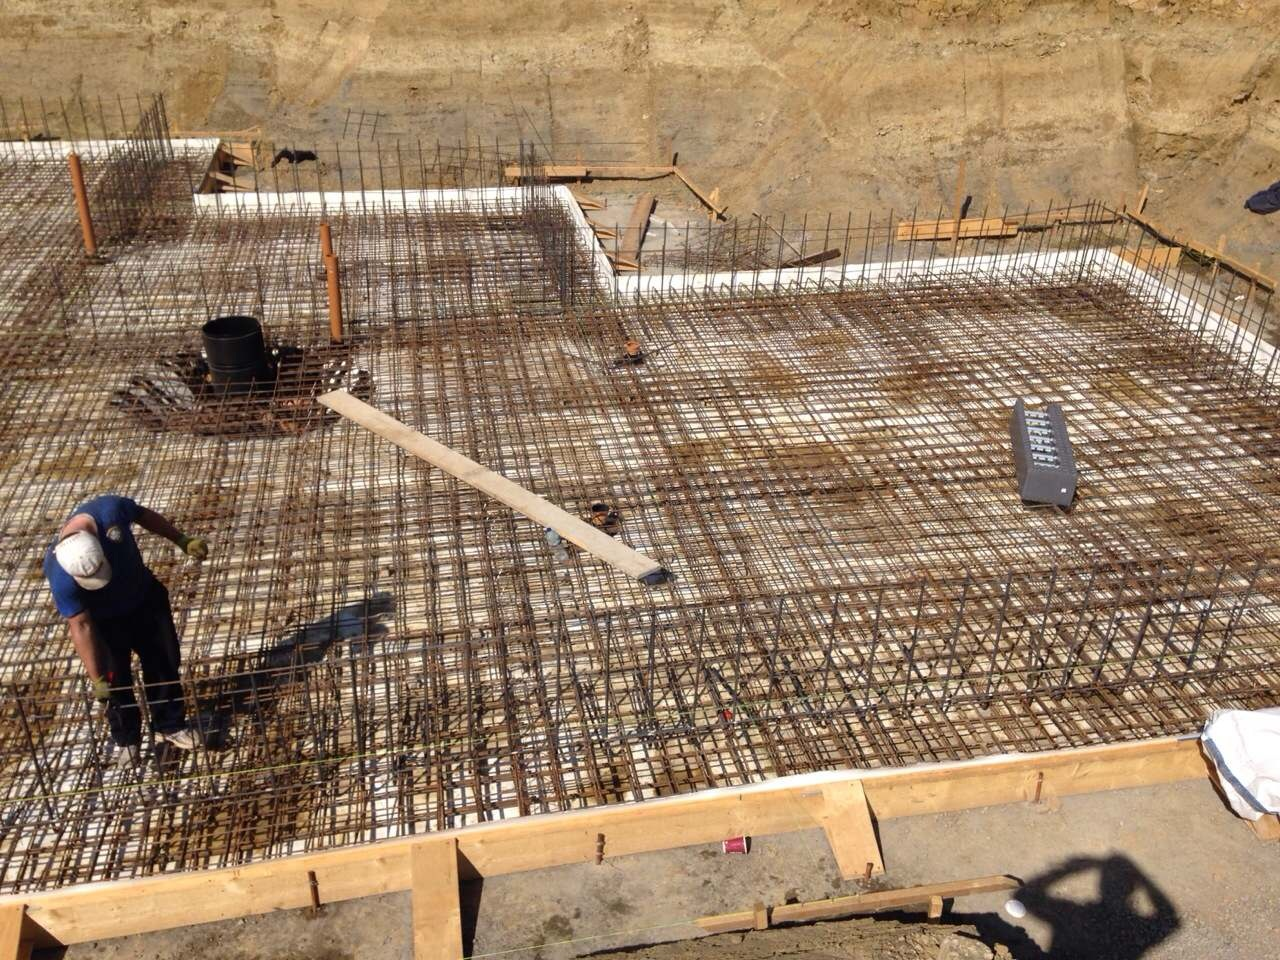 Formation of the raft foundation using concrete and rebar steel